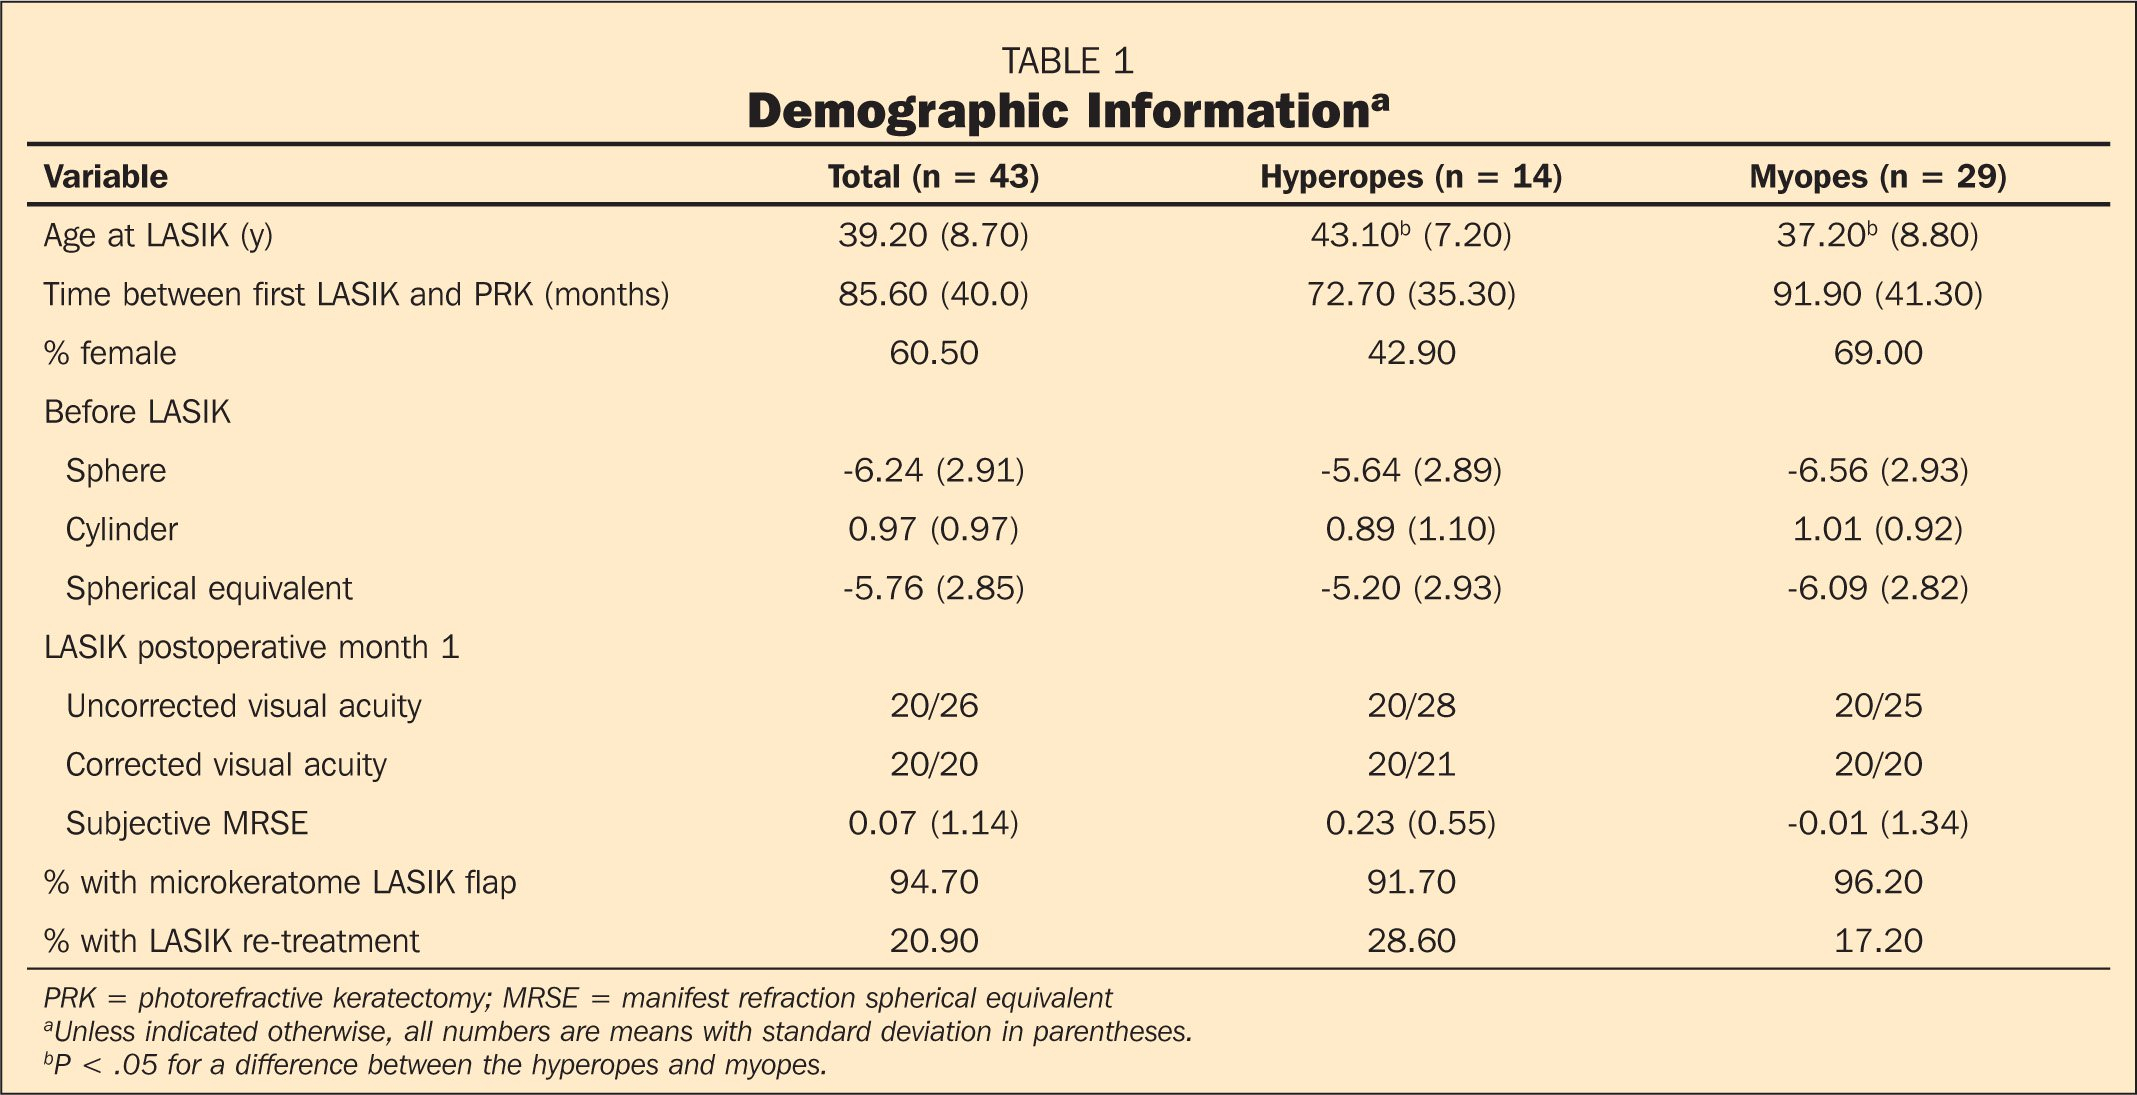 Demographic Informationa